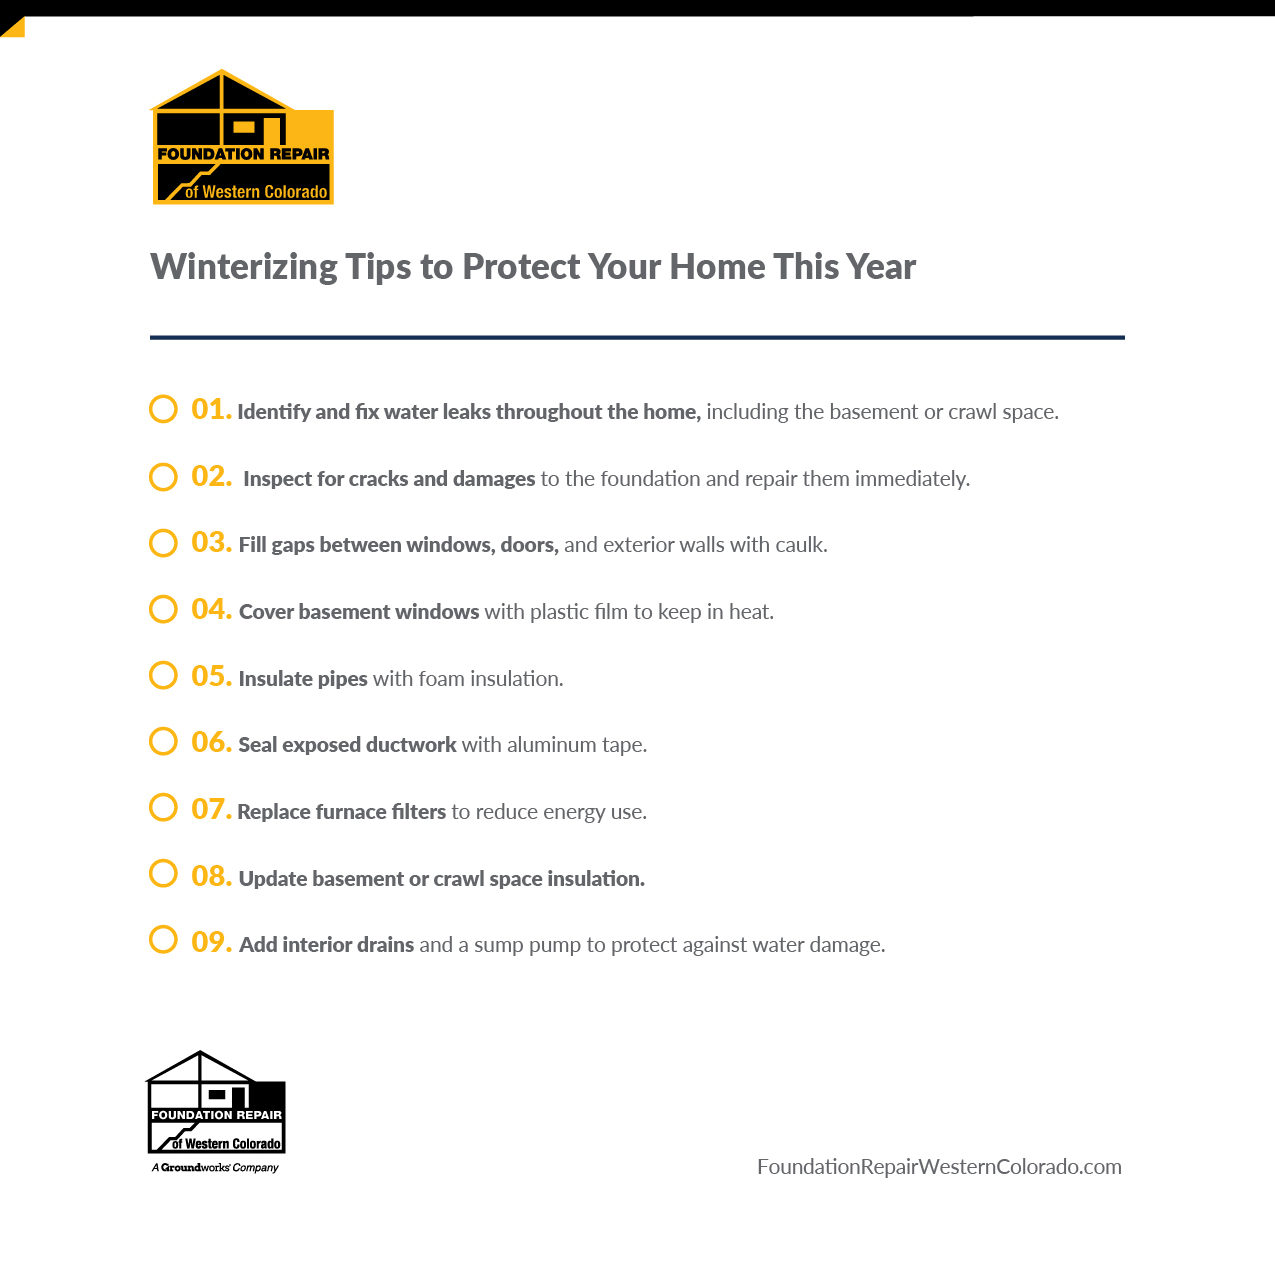 winterizing tips to protect your home